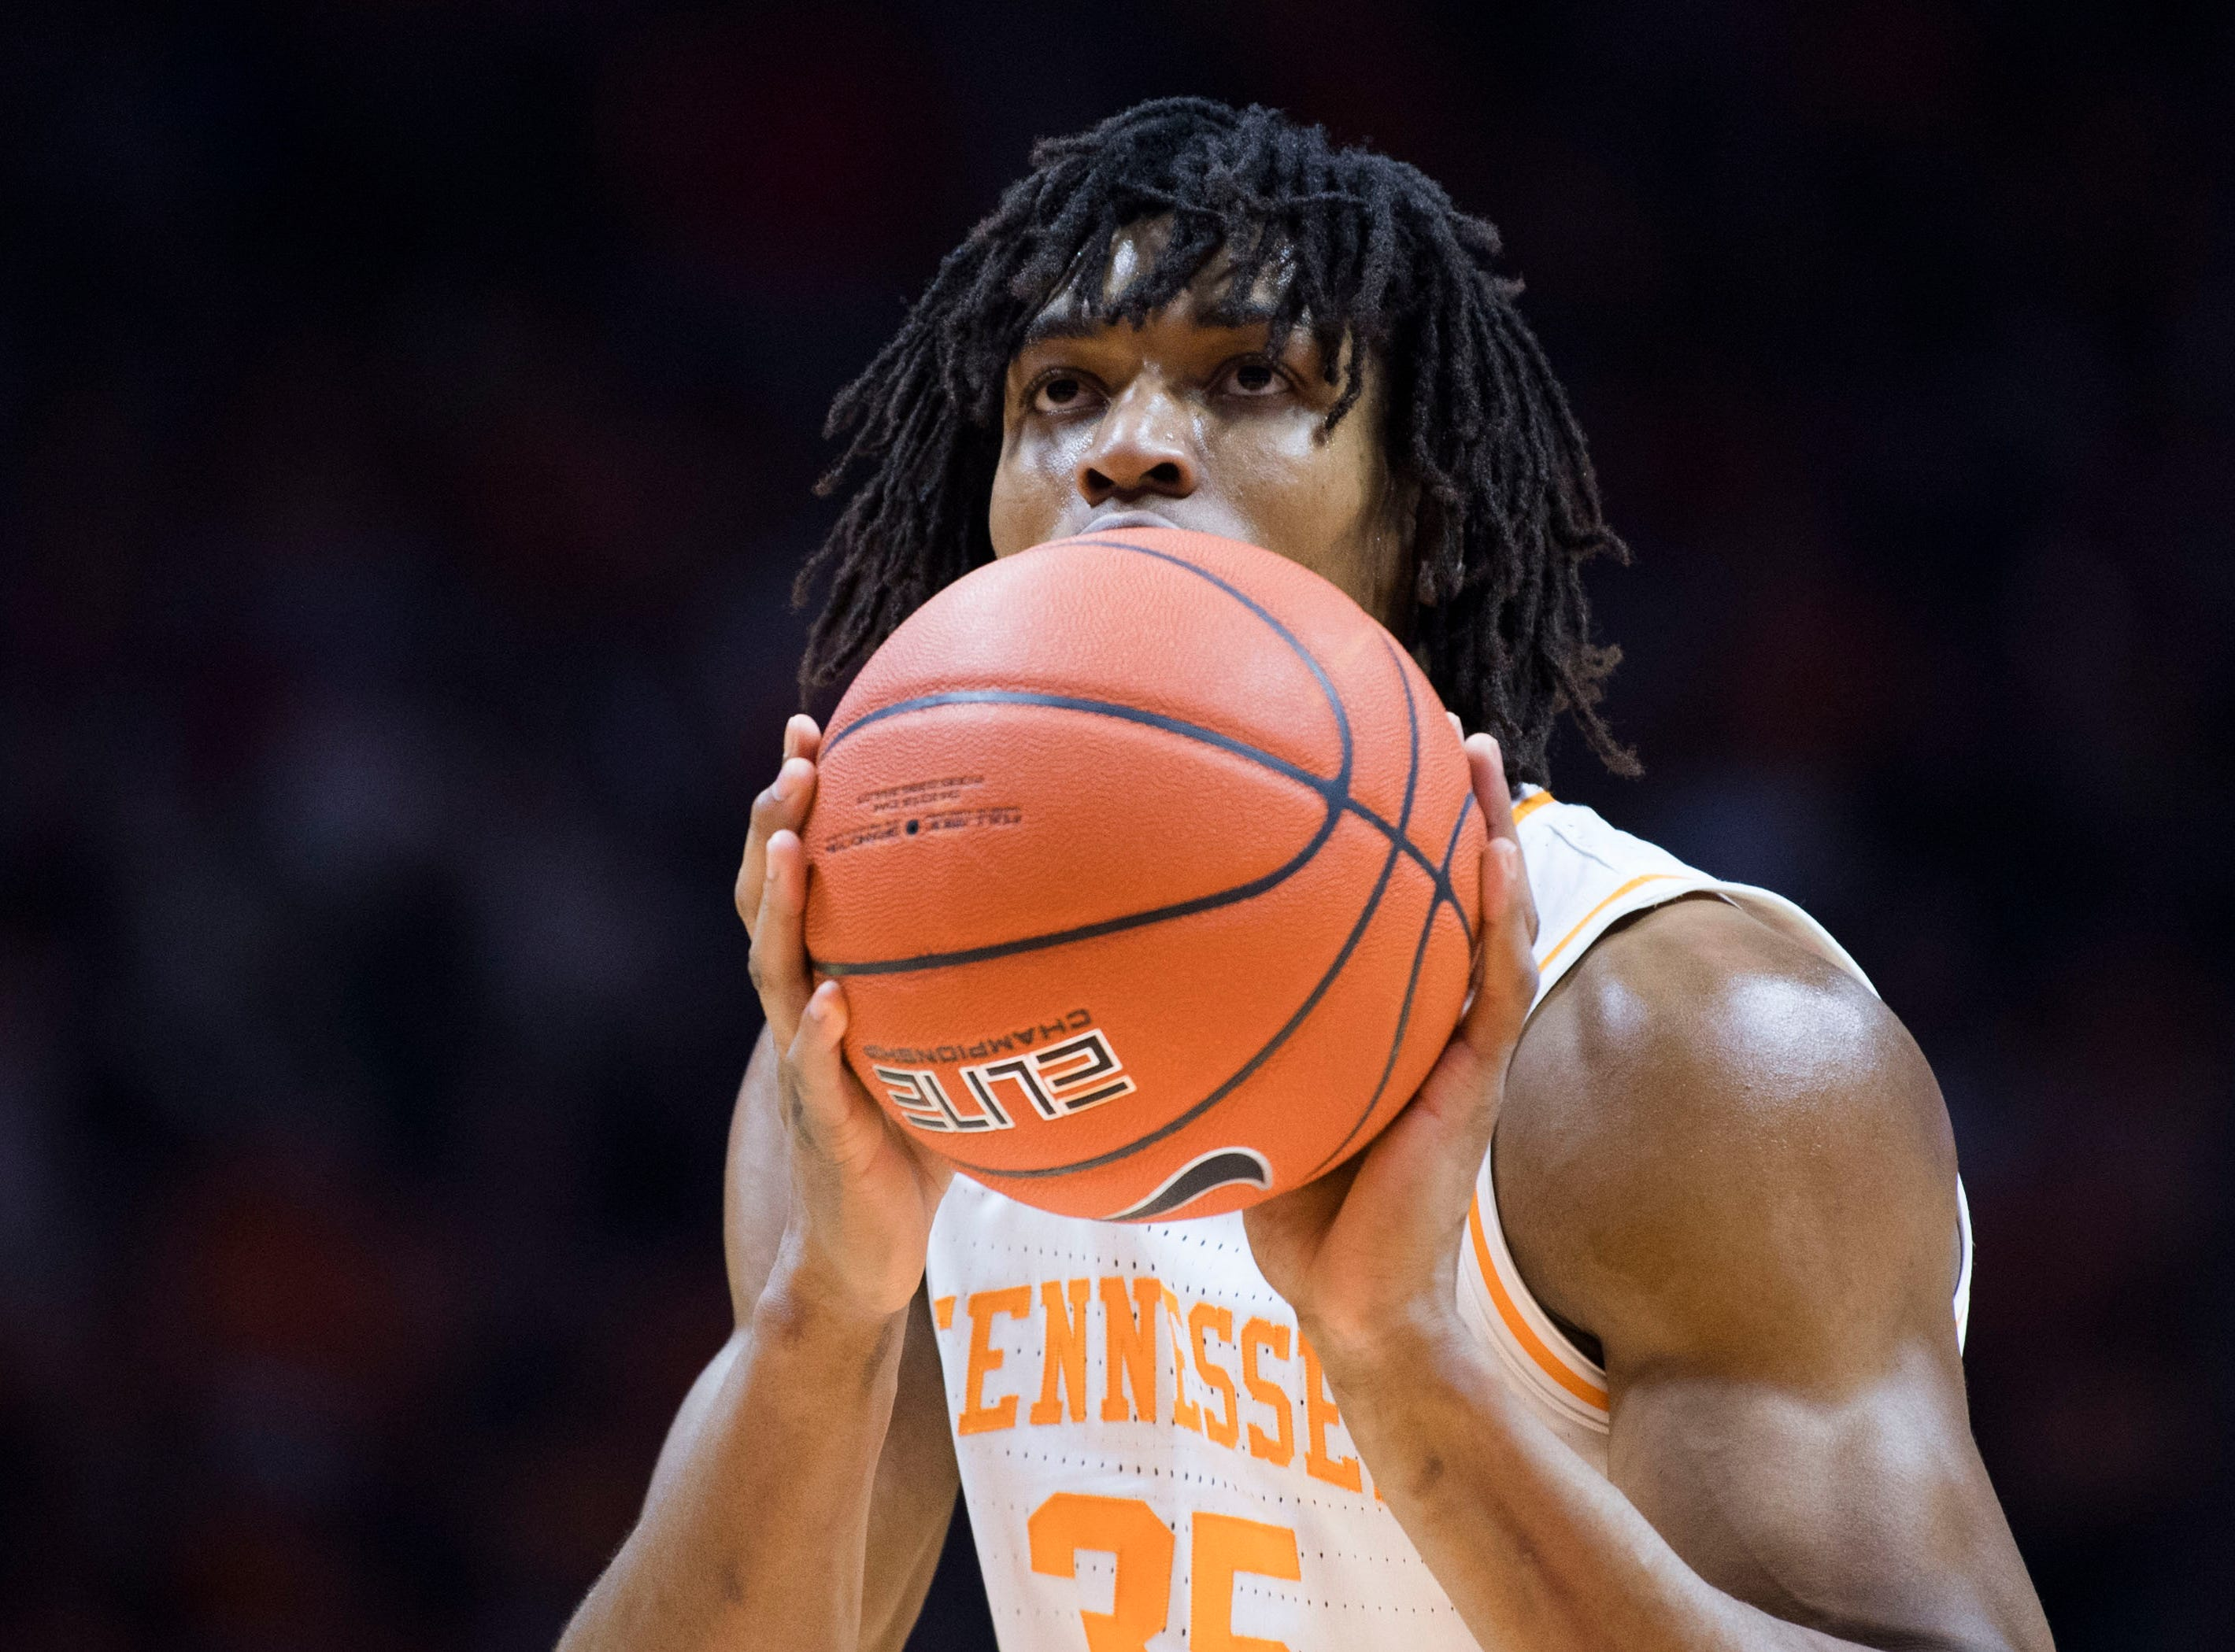 Tennessee guard/forward Yves Pons (35) shoots a free throw during a NCAA men's basketball game between Tennessee and Arkansas at Thompson-Boling Arena Tuesday, Jan. 15, 2019.